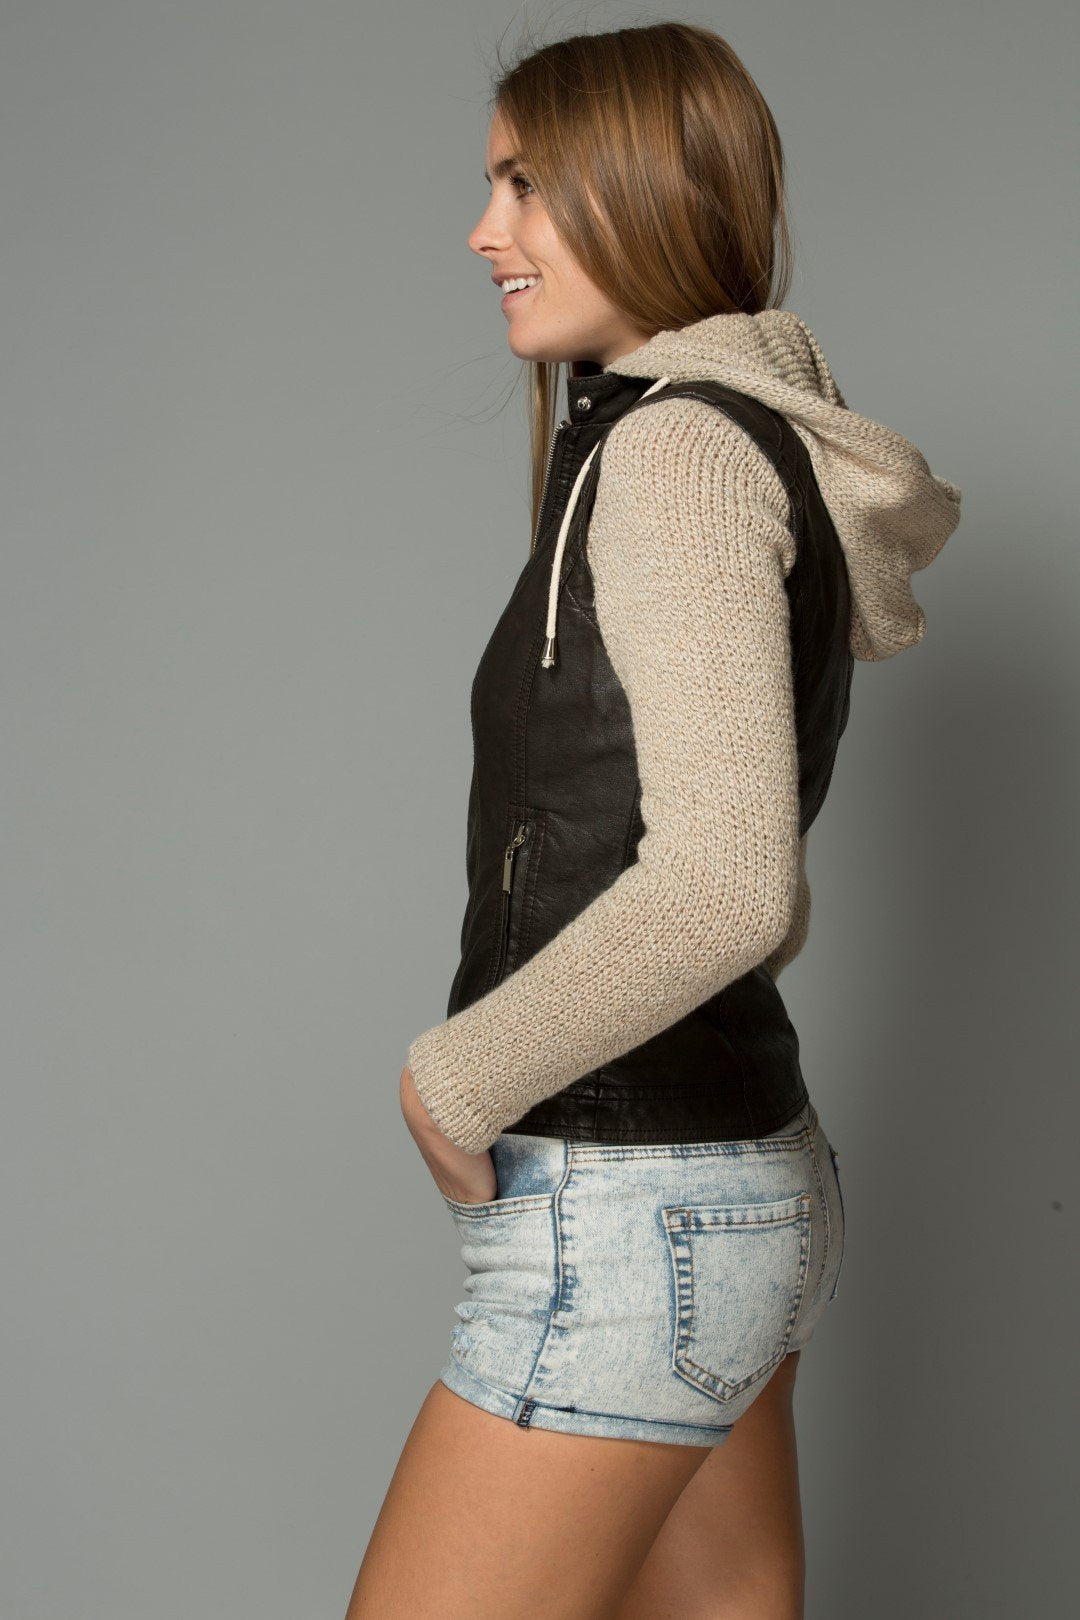 RUN AWAY WITH ME HOODED JACKET/VEST